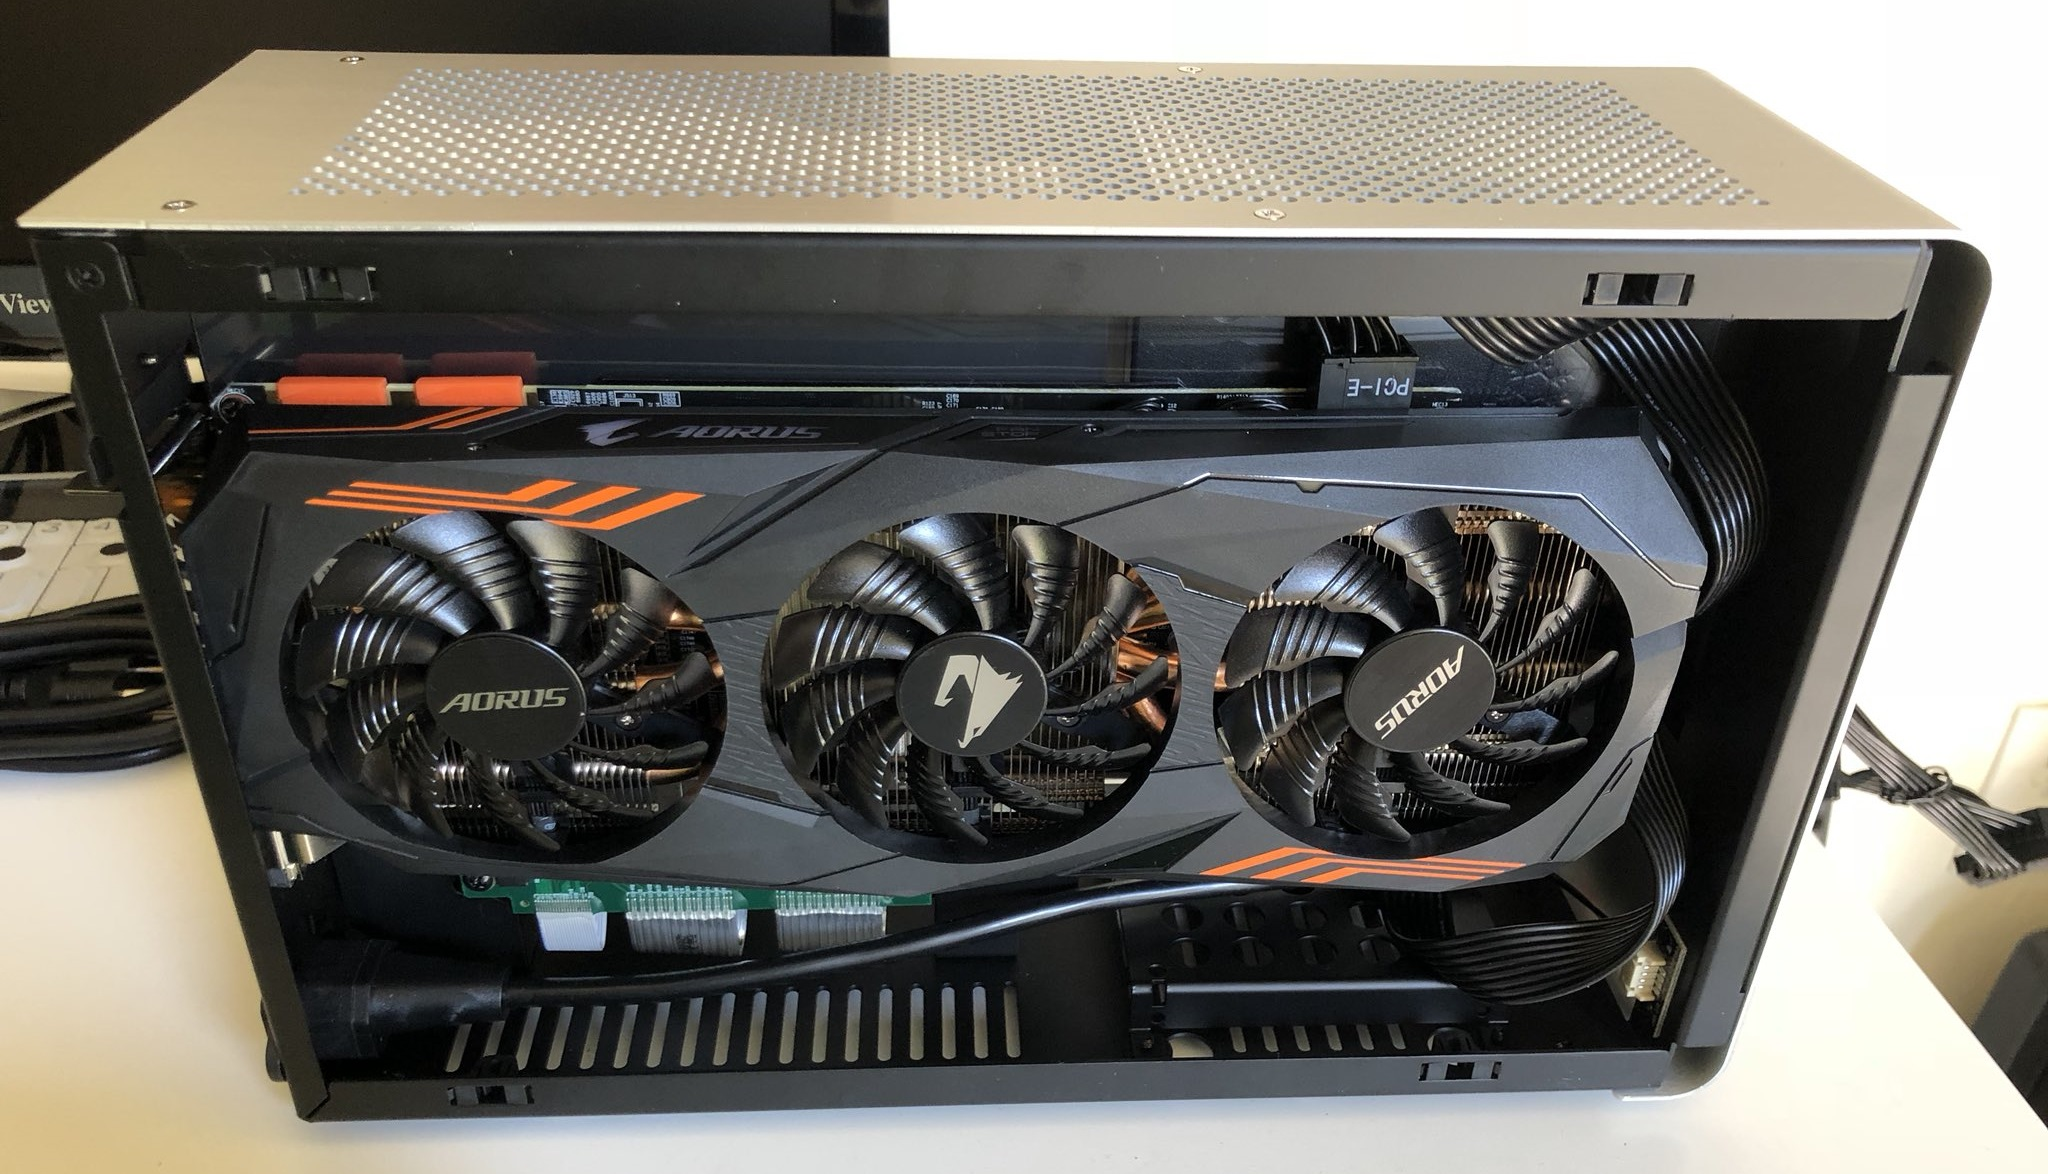 Building the smallest possible PC with a full-size GPU